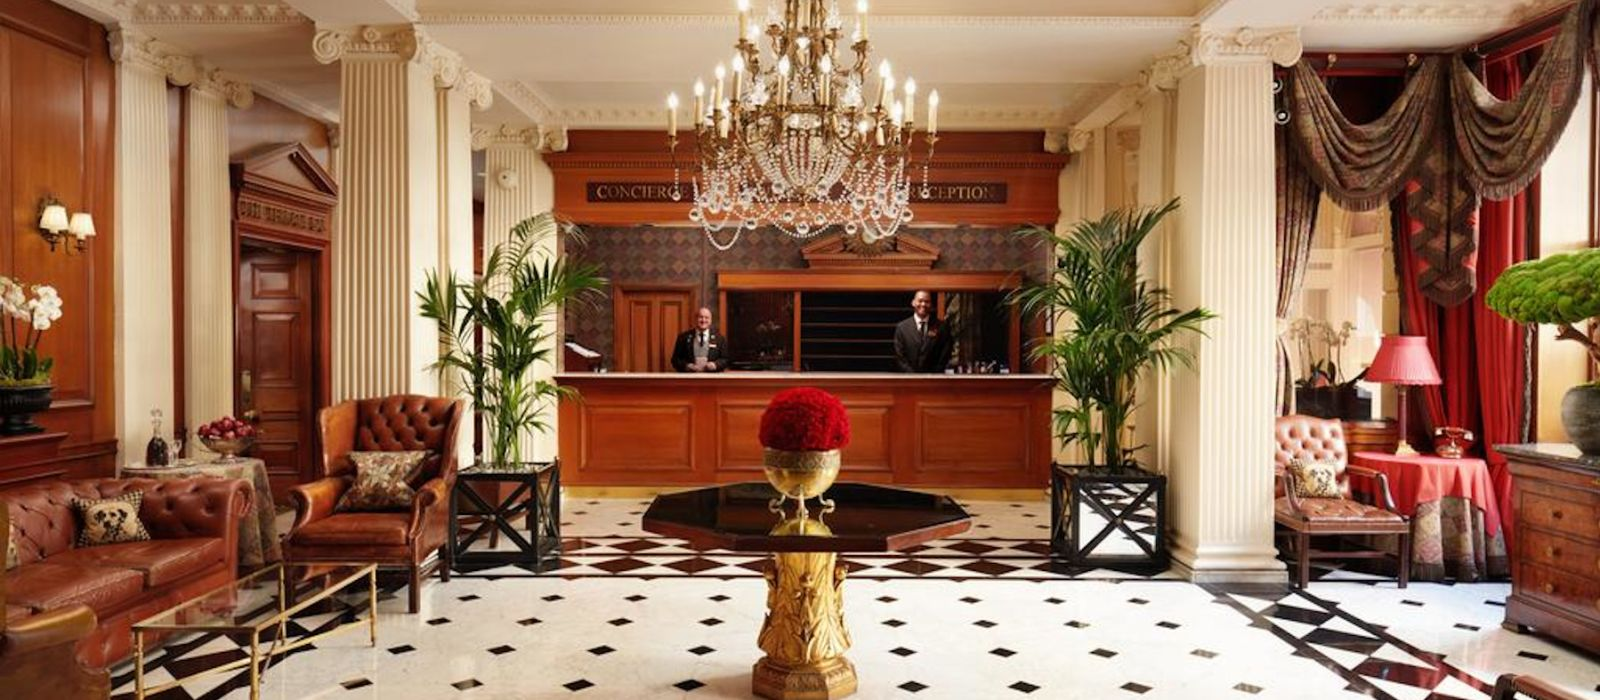 Hotel Chesterfield Mayfair UK & Ireland